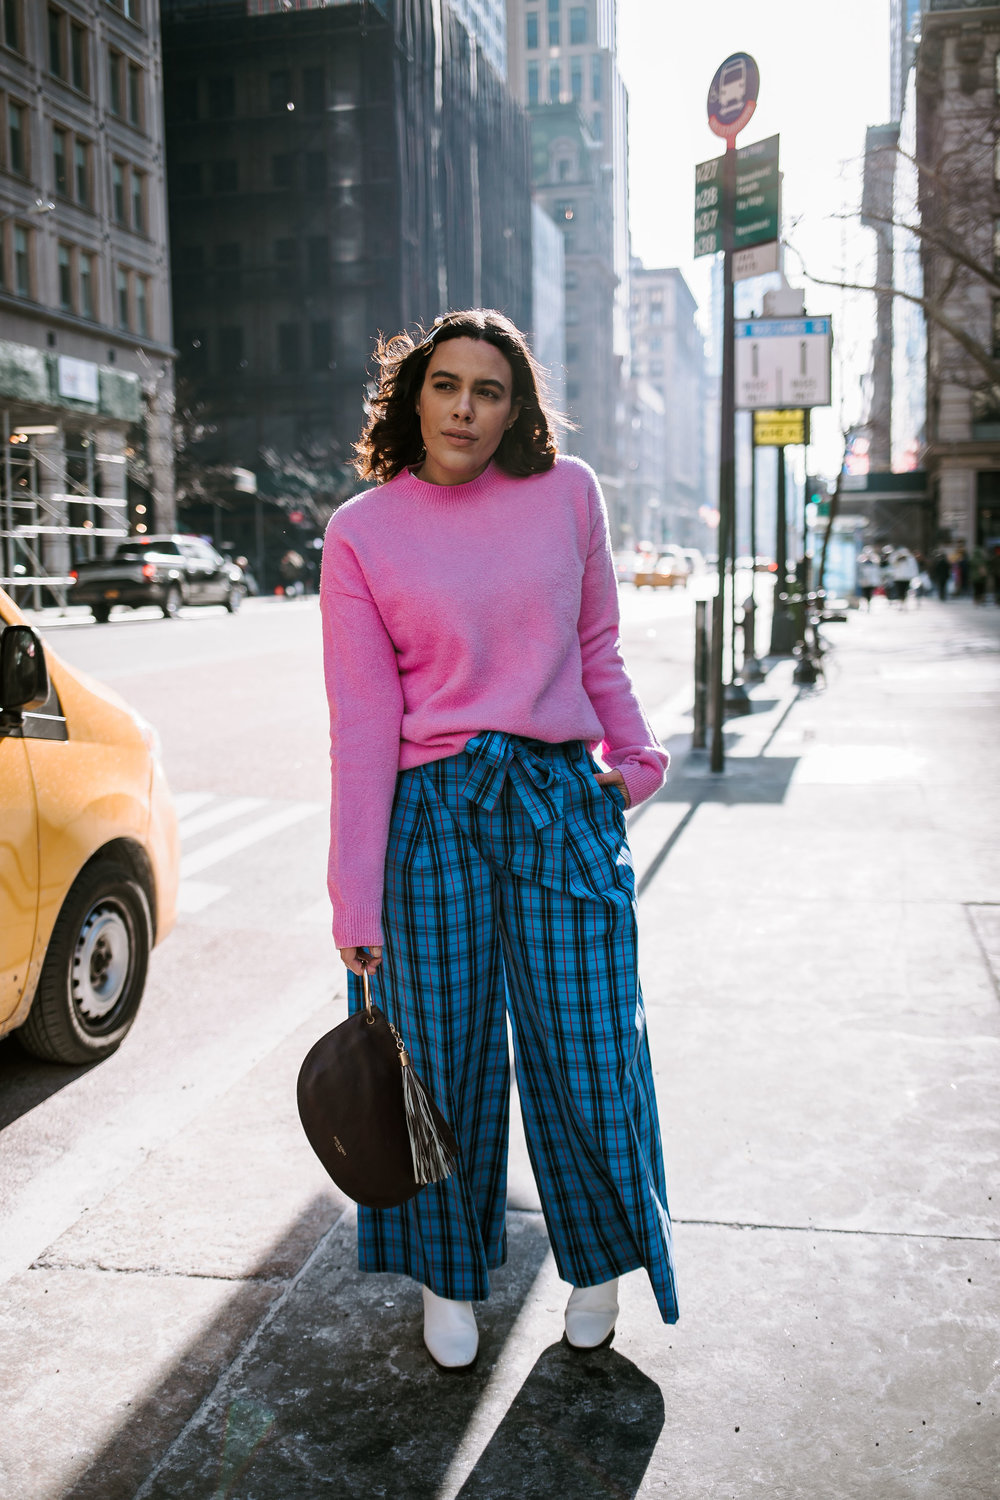 how-to-style-zara-plaid-trousers-pants-latina-new-york-city-fashion-blogger-style-operator-winter-fashion.jpg